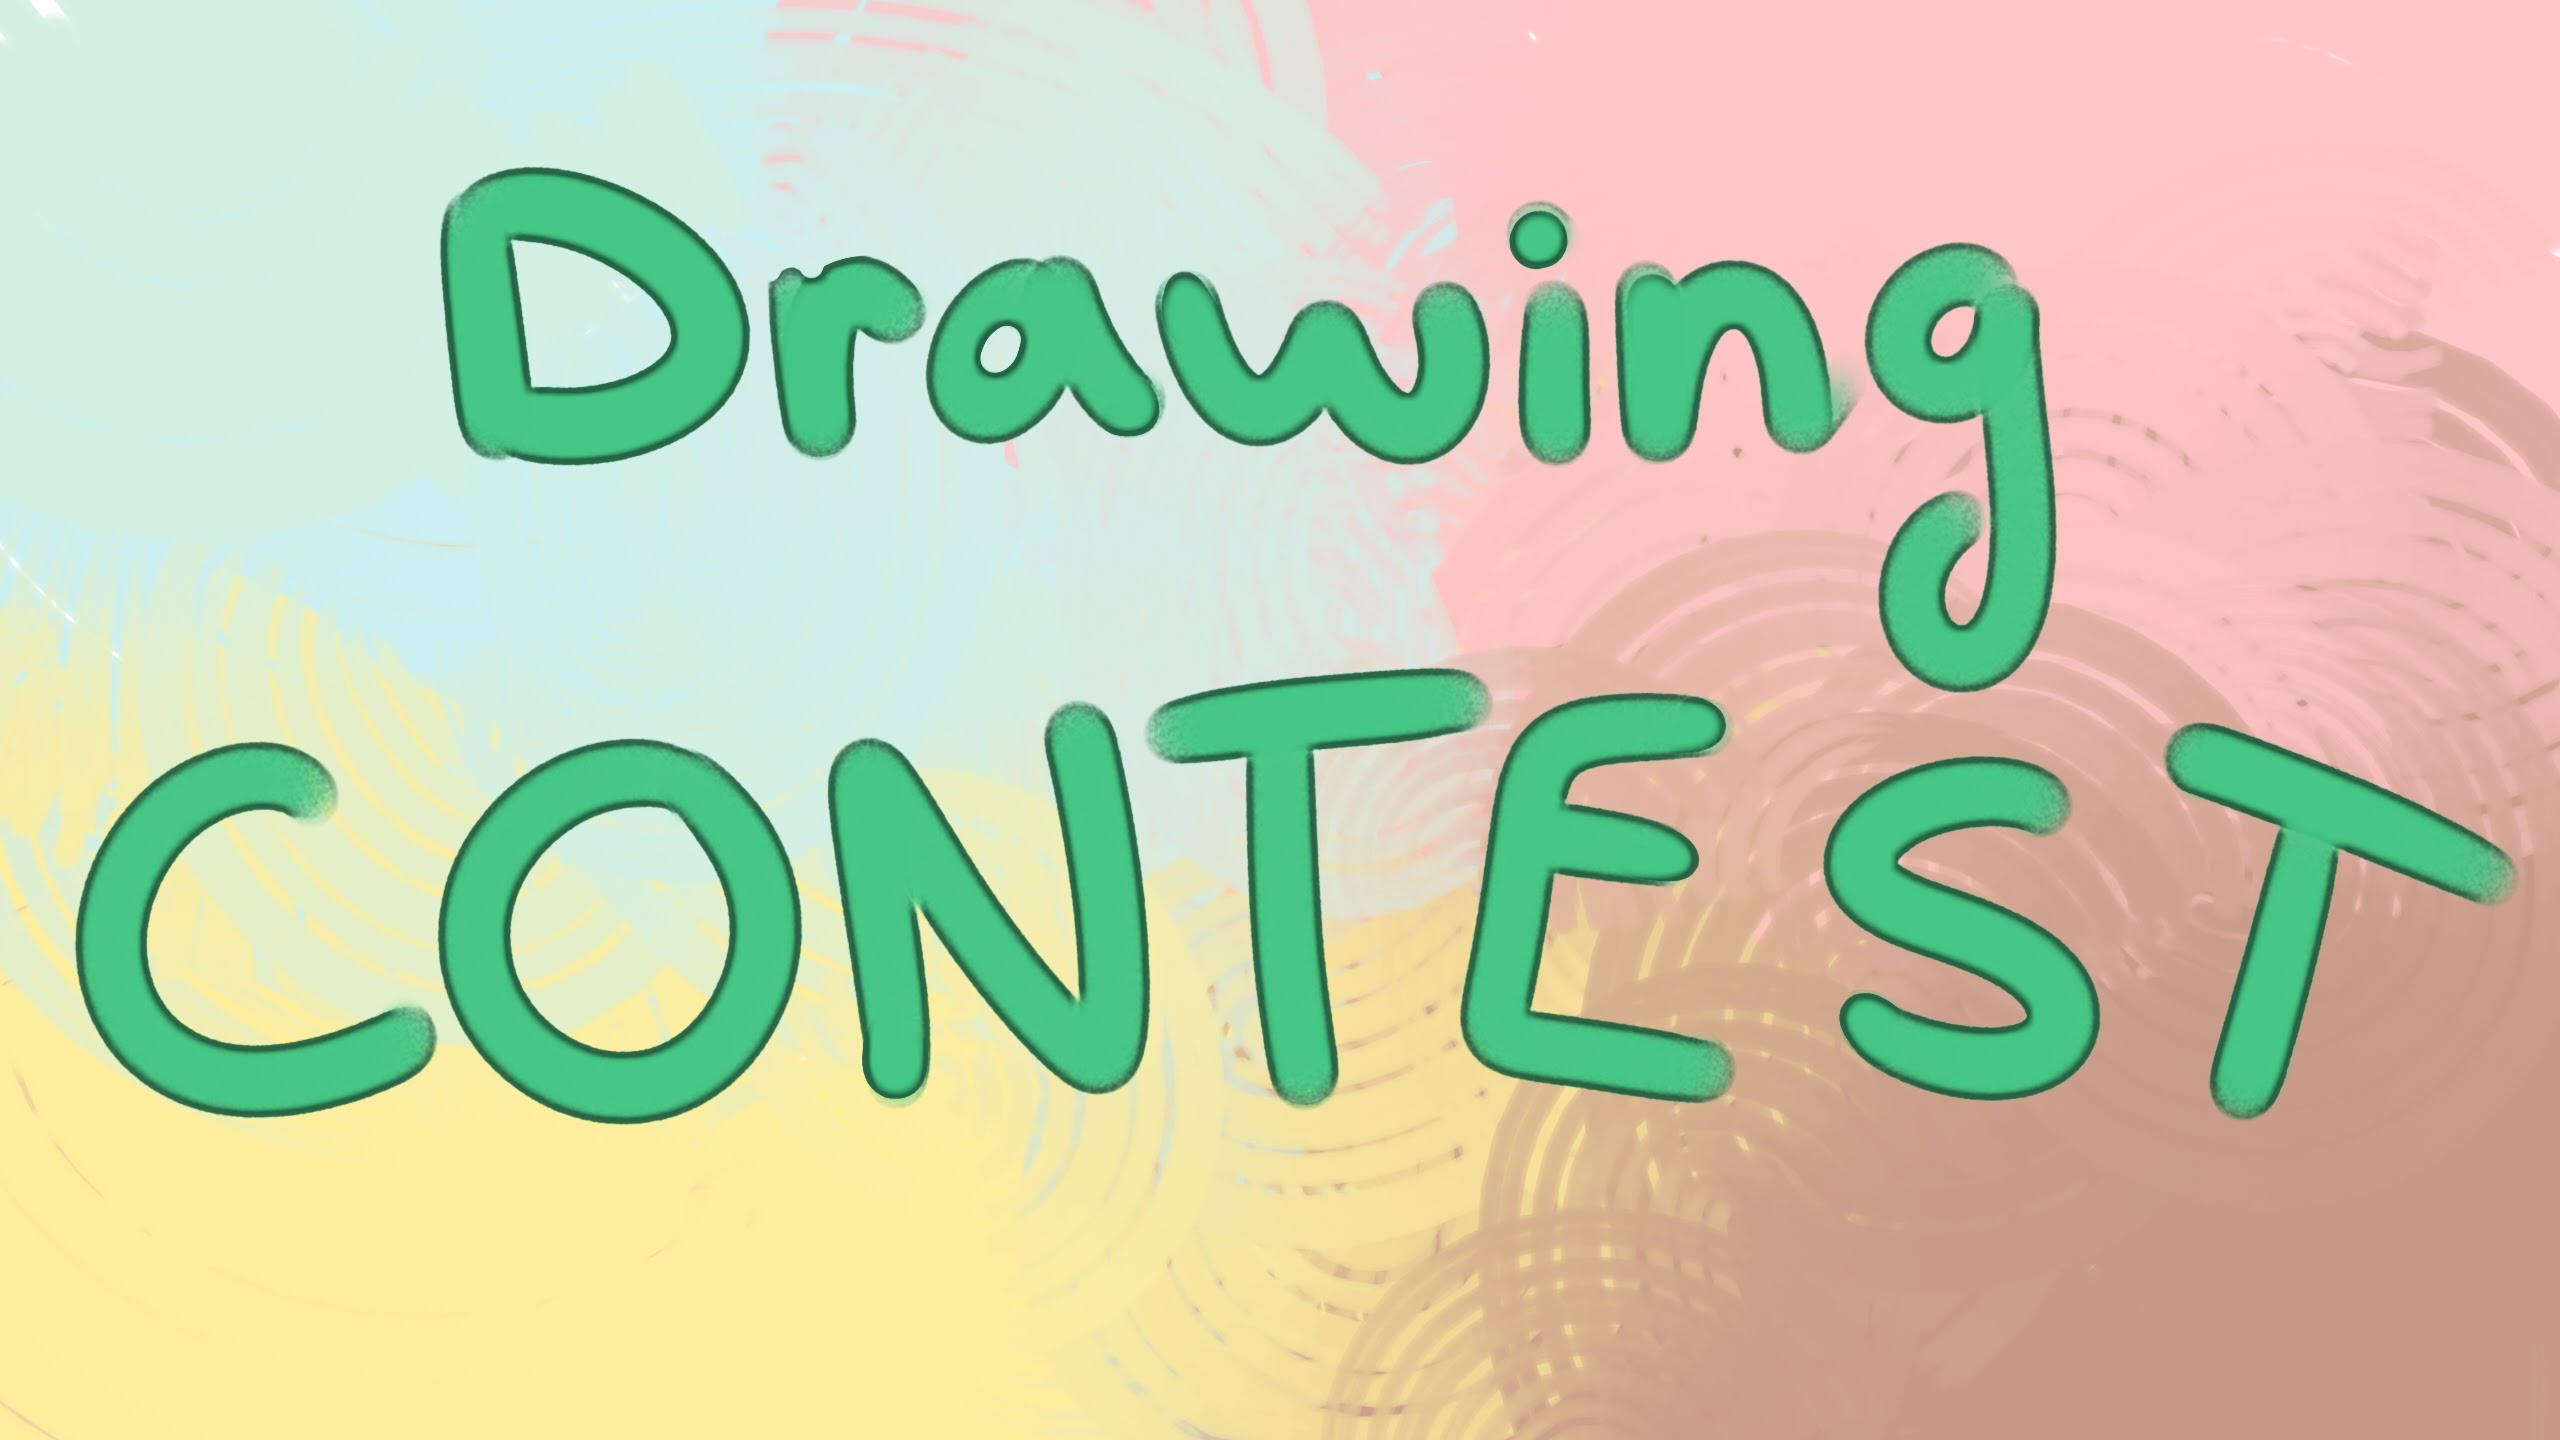 2560x1440 Drawing Contest Closed